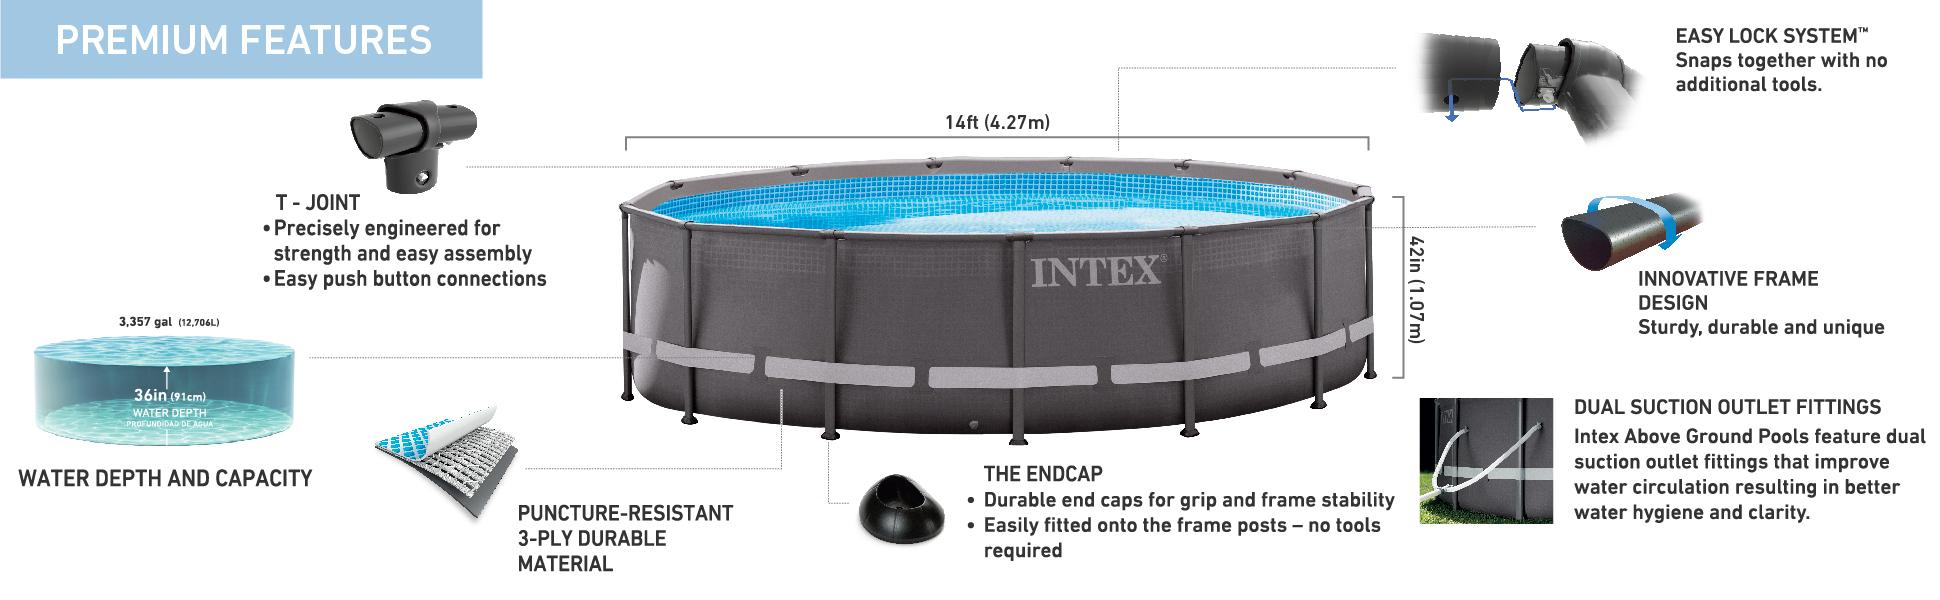 Pool Sand Filter Hook Up Diagram Flirting Dating With Naughty Intex Pump Wiring All The Filters Use Same Mechanics When